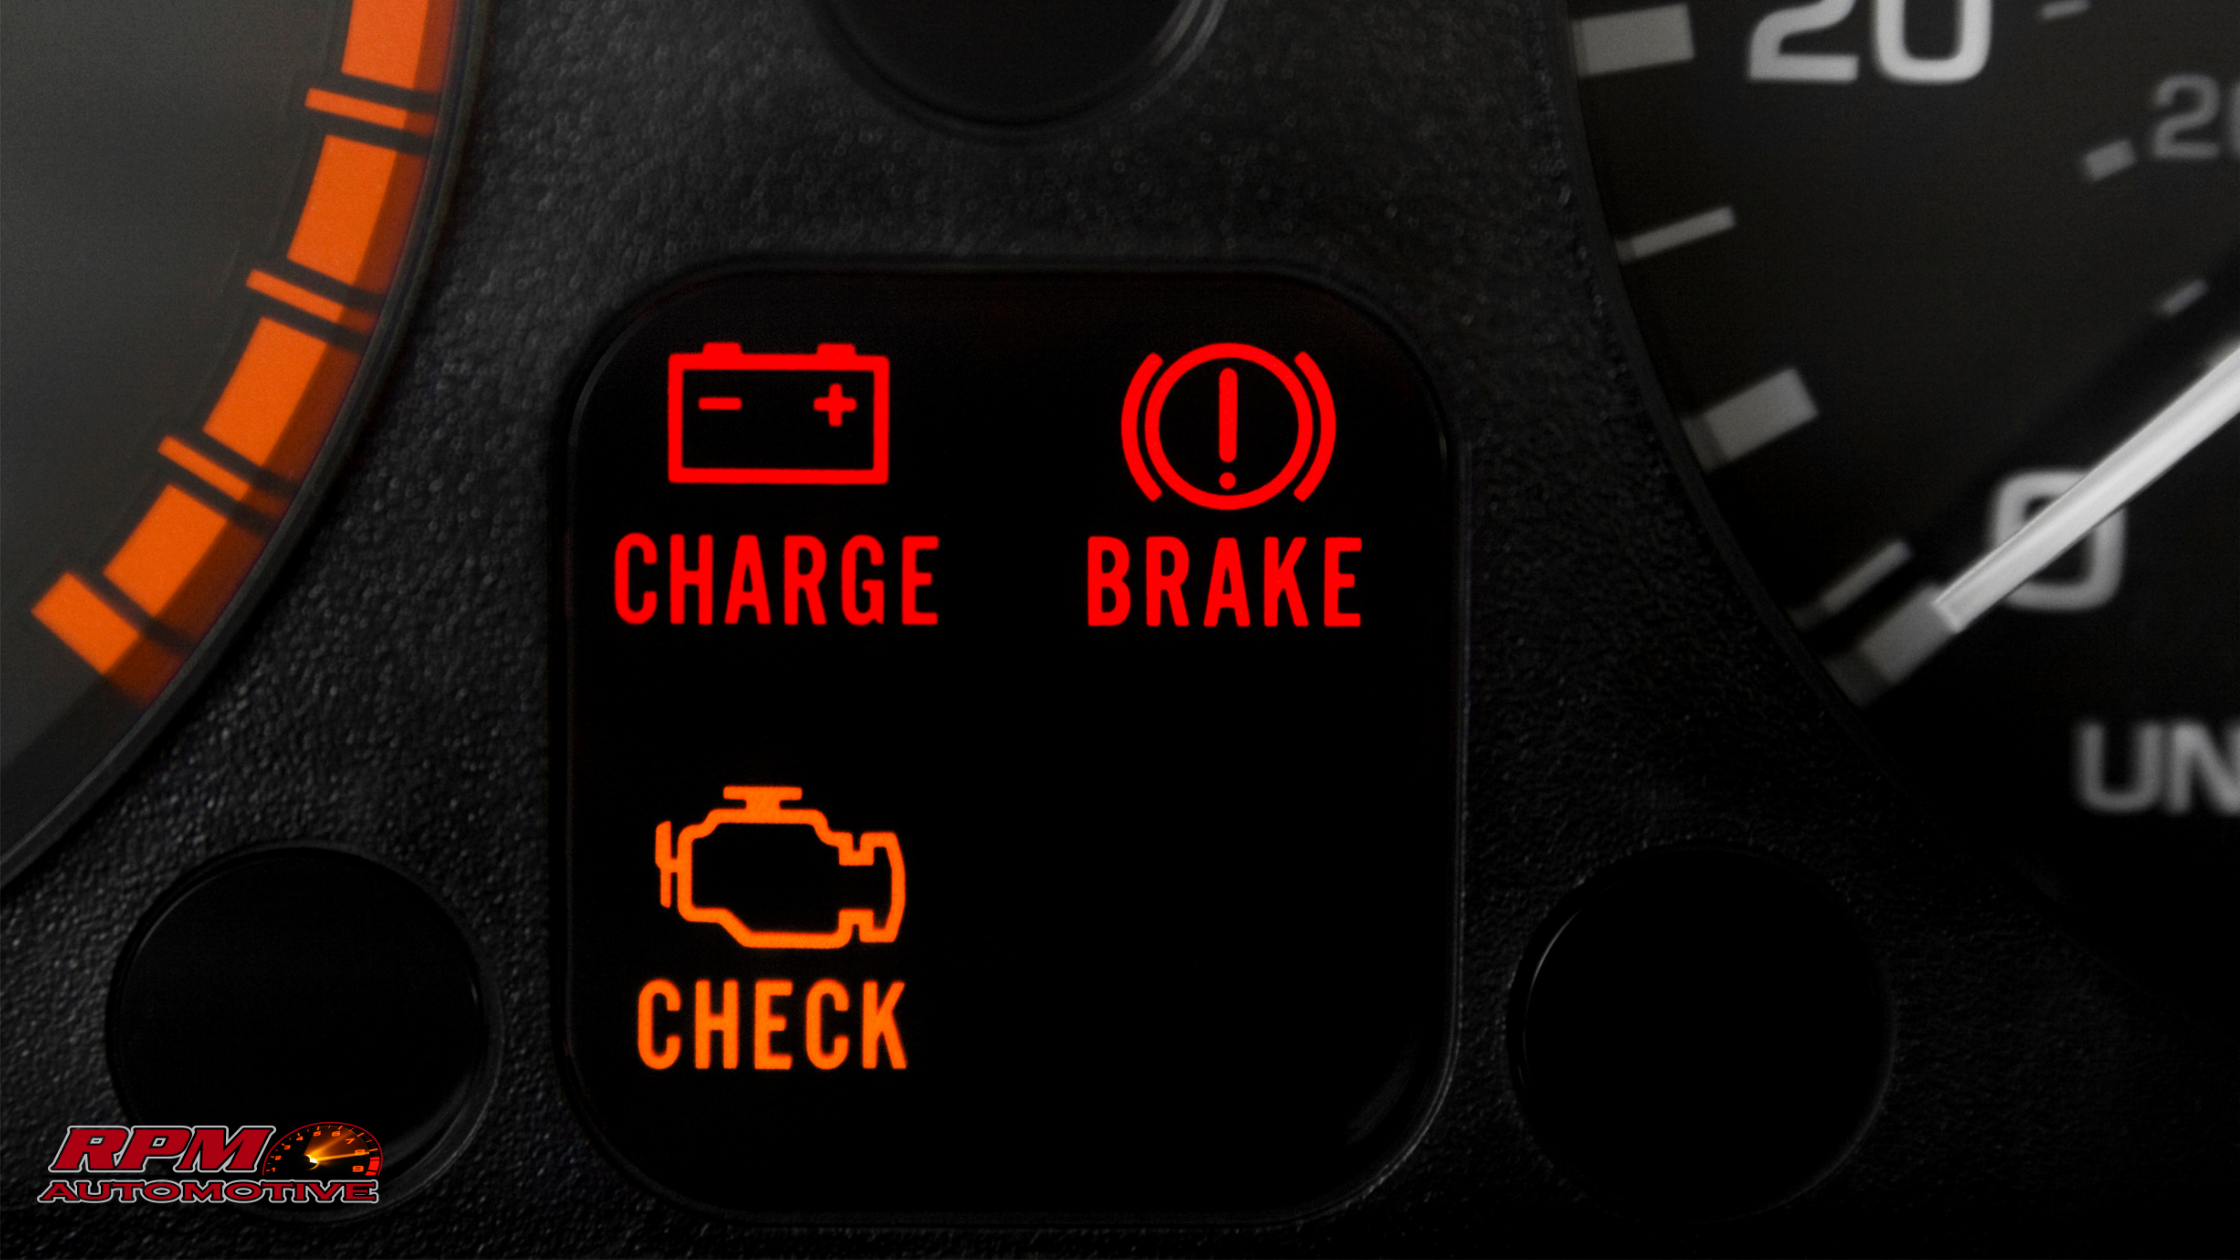 Warning Signs with RPM Automotive